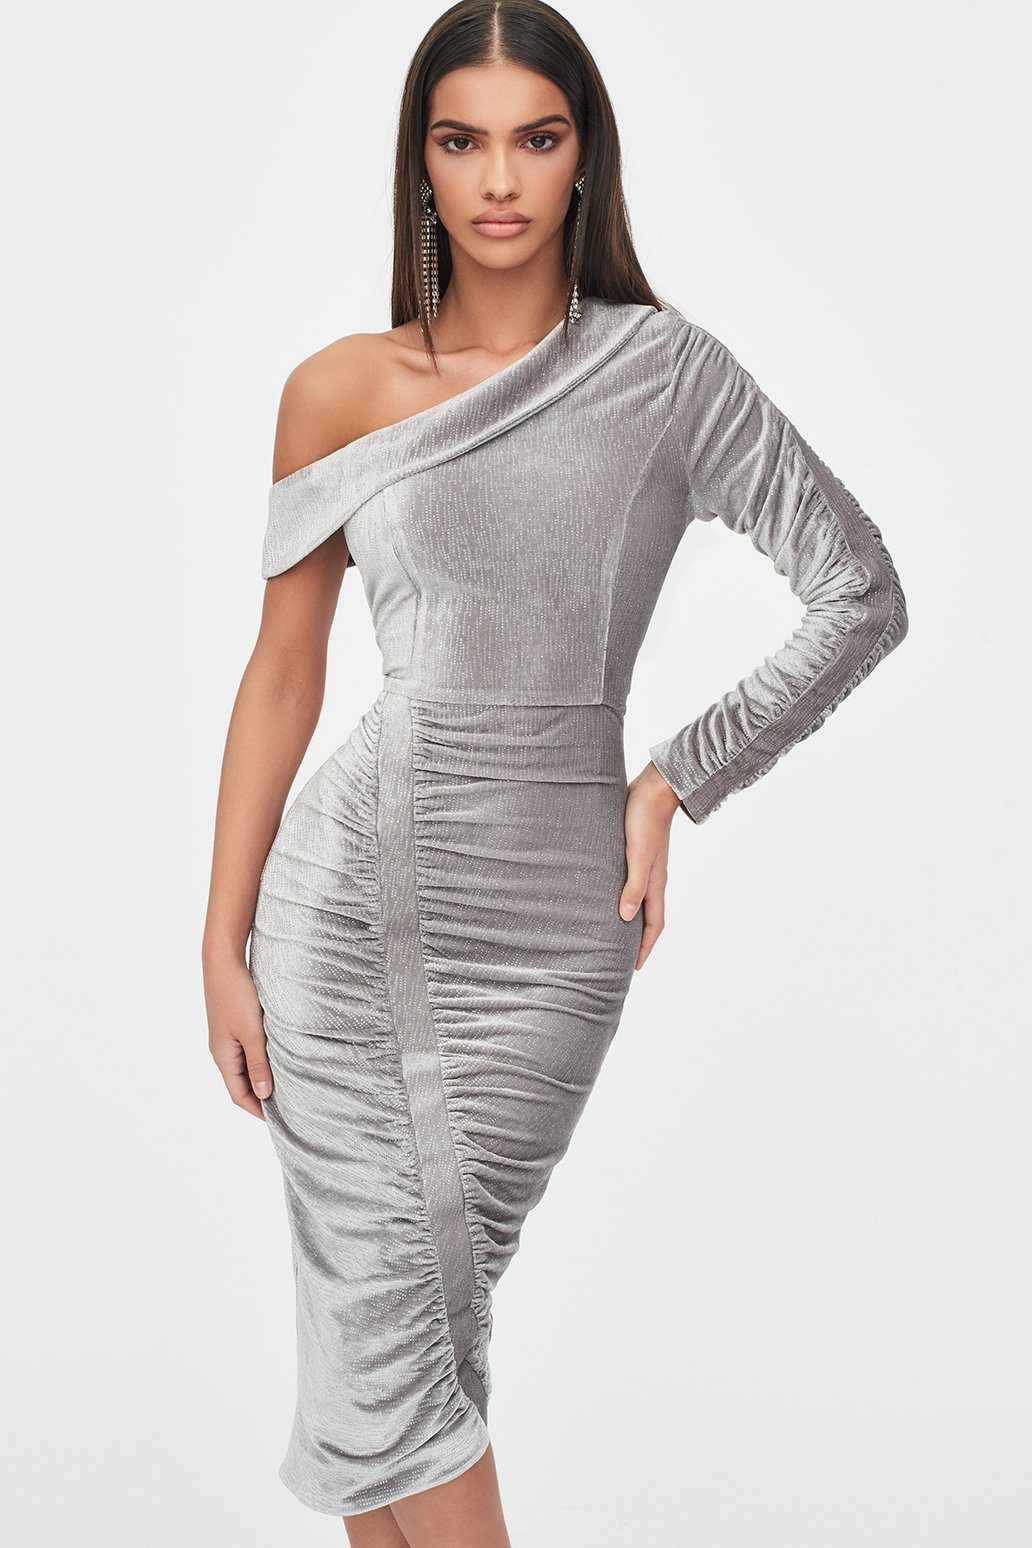 Lavish Alice Rosie Connolly One Sleeve Gathered Velvet Diamante Midi Dress in Silver Grey